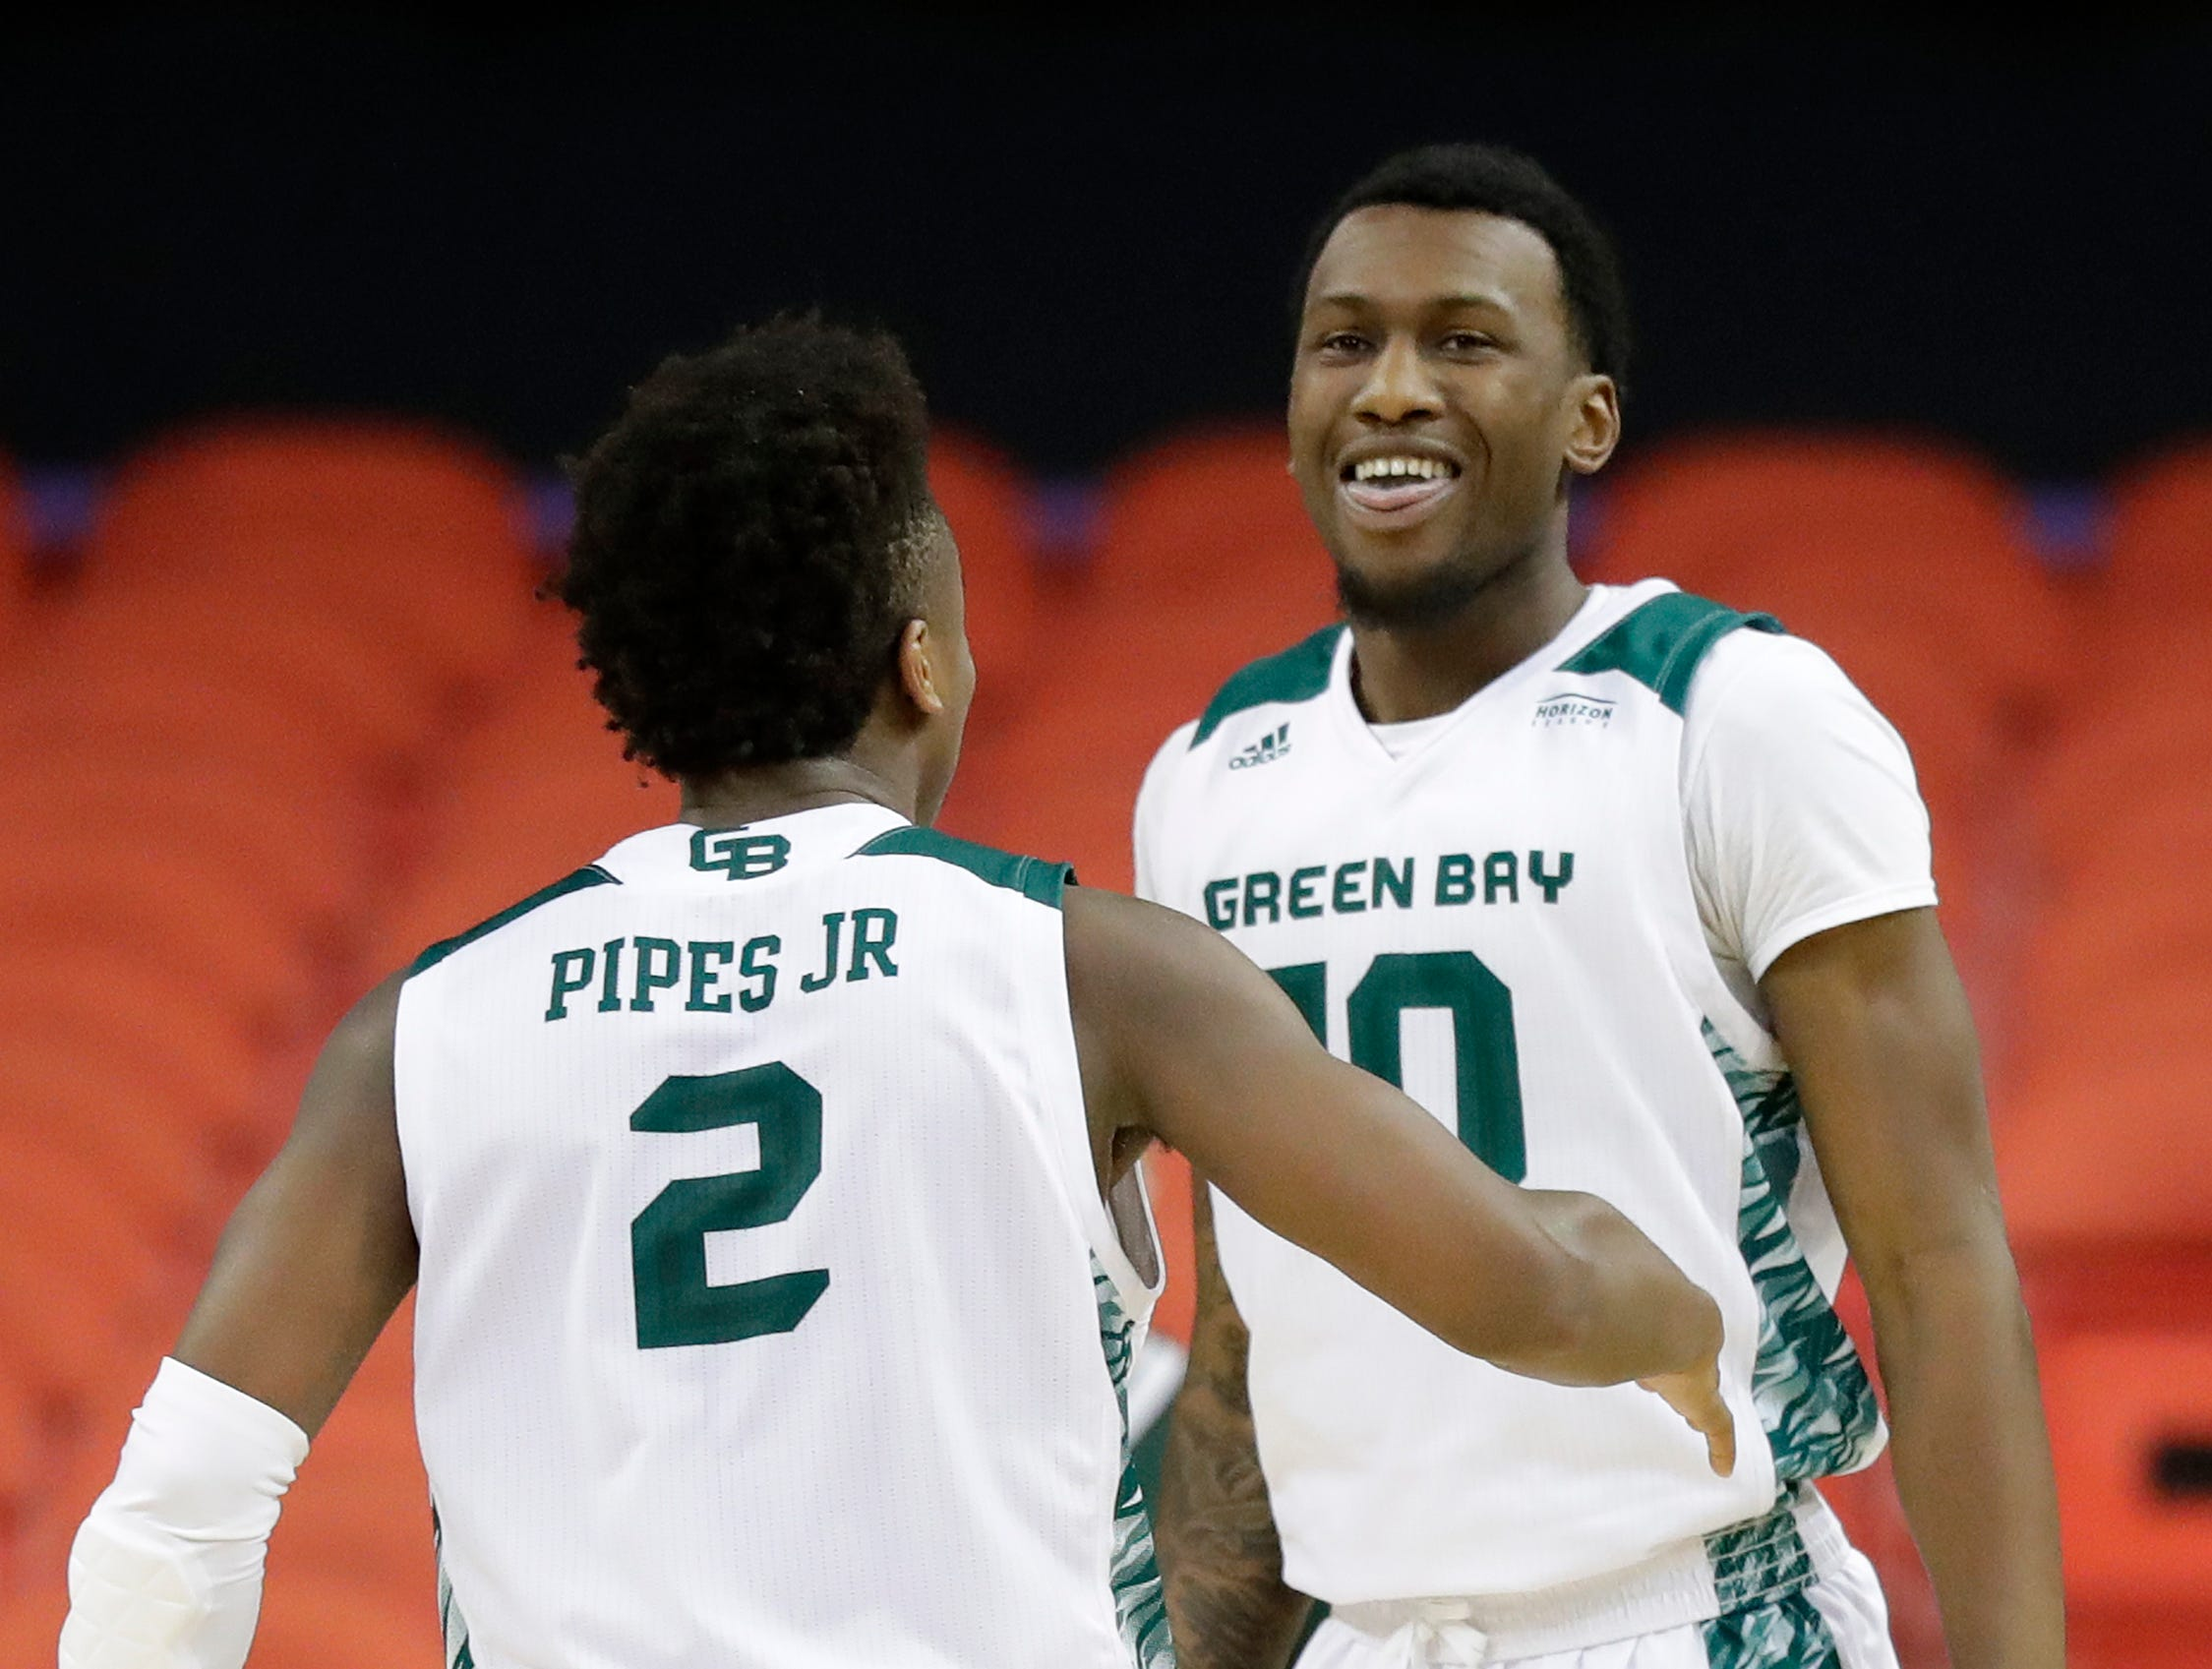 Green Bay Phoenix forward Shanquan Hemphill (10) celebrates after a block against the Cleveland State Vikings in a Horizon League basketball game at the Resch Center on Saturday, January 5, 2019 in Green Bay, Wis.